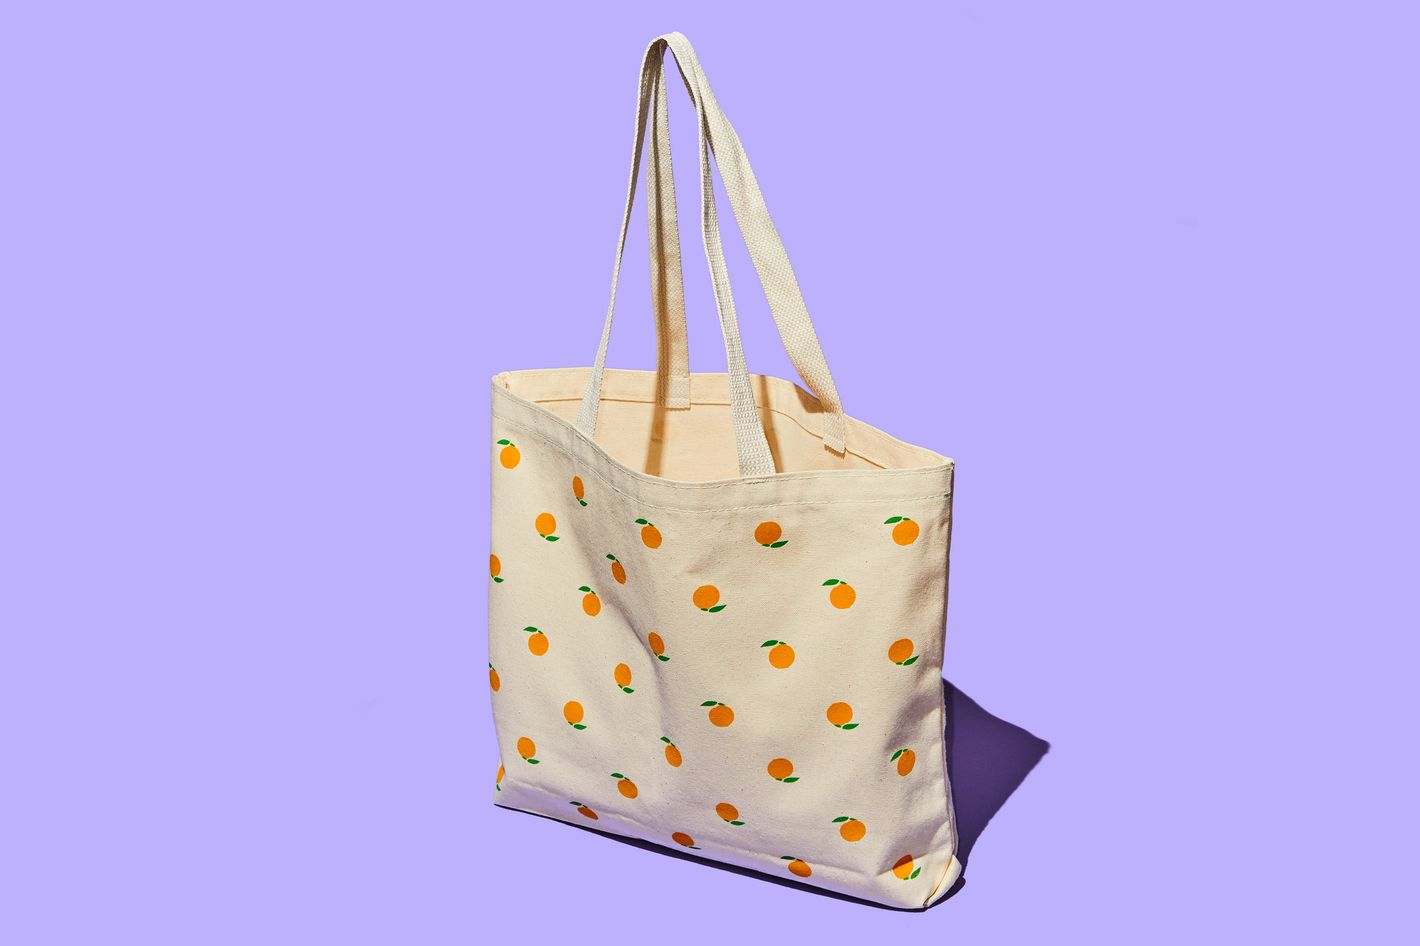 The Best Status Tote Bags The Strategist New York Magazine